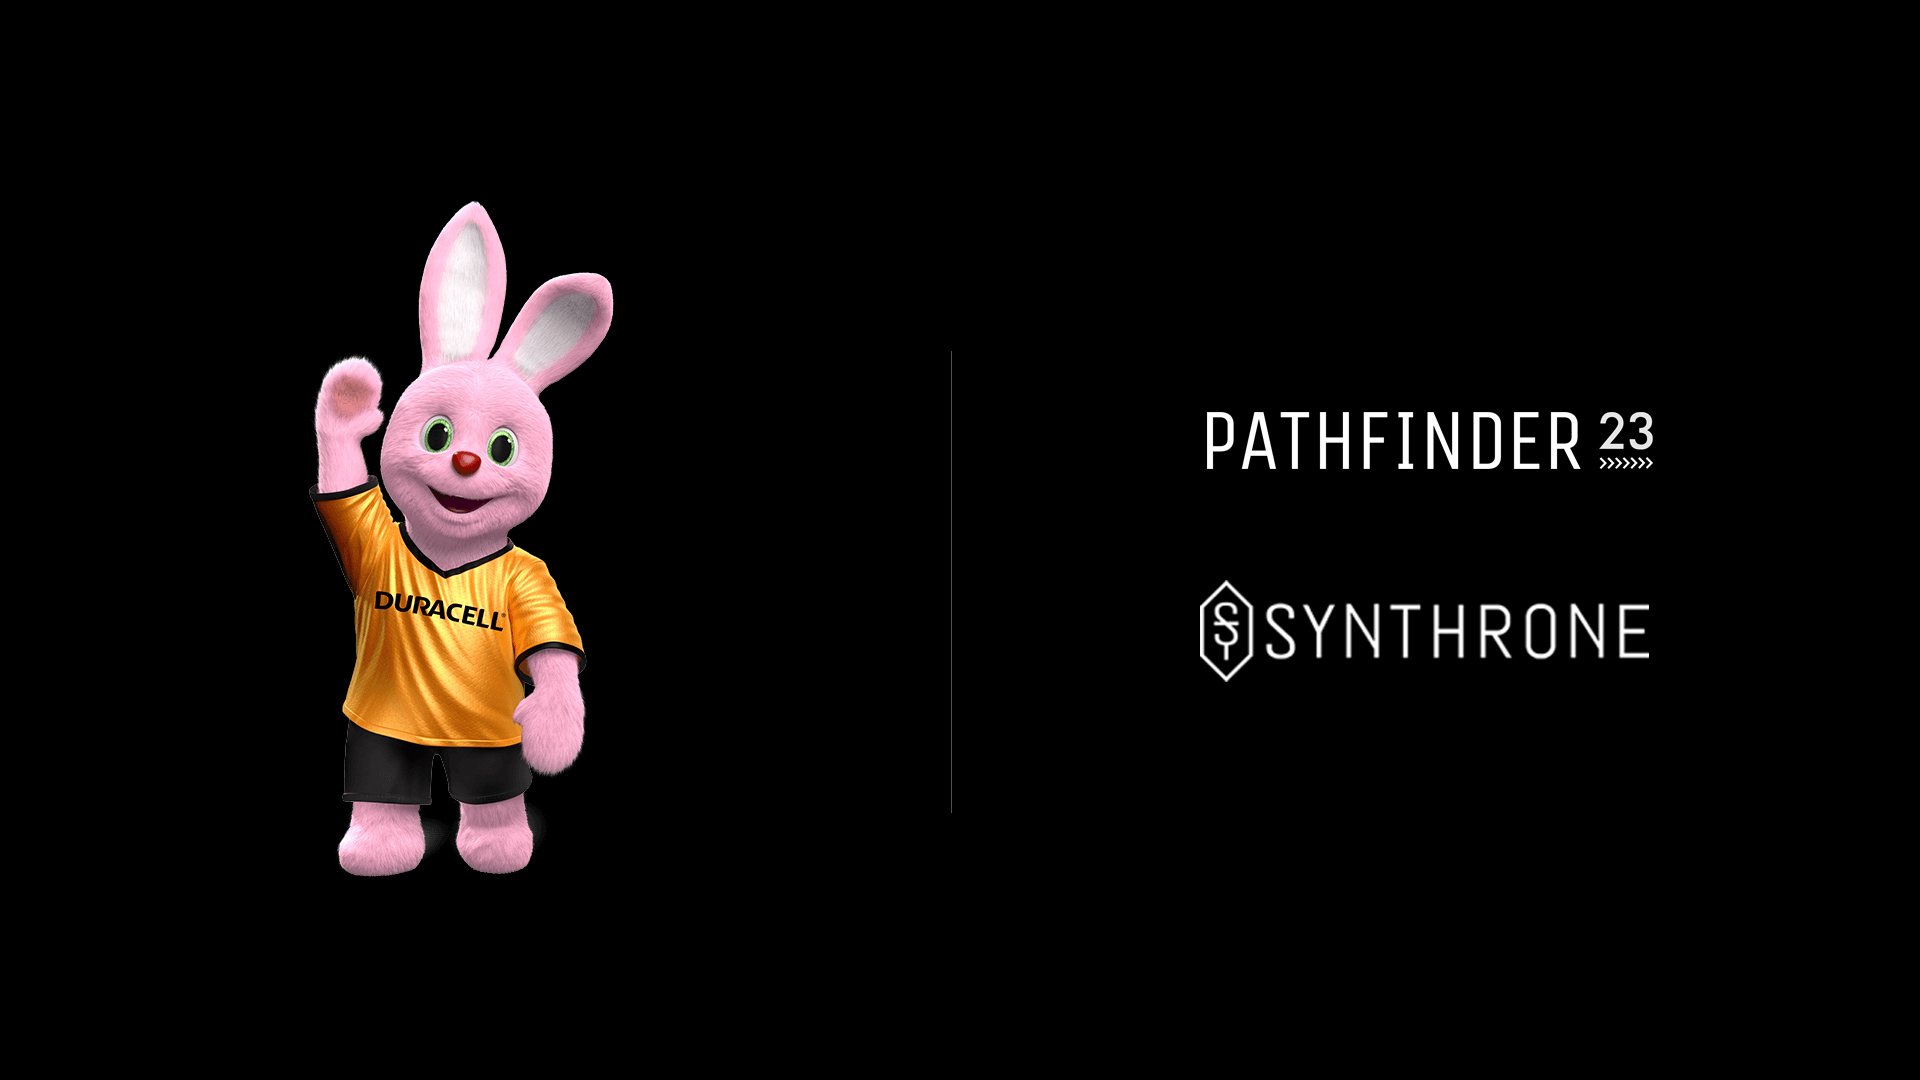 Duracell name Pathfinder 23 and Synthrone eCommerce partner for 1920x1080